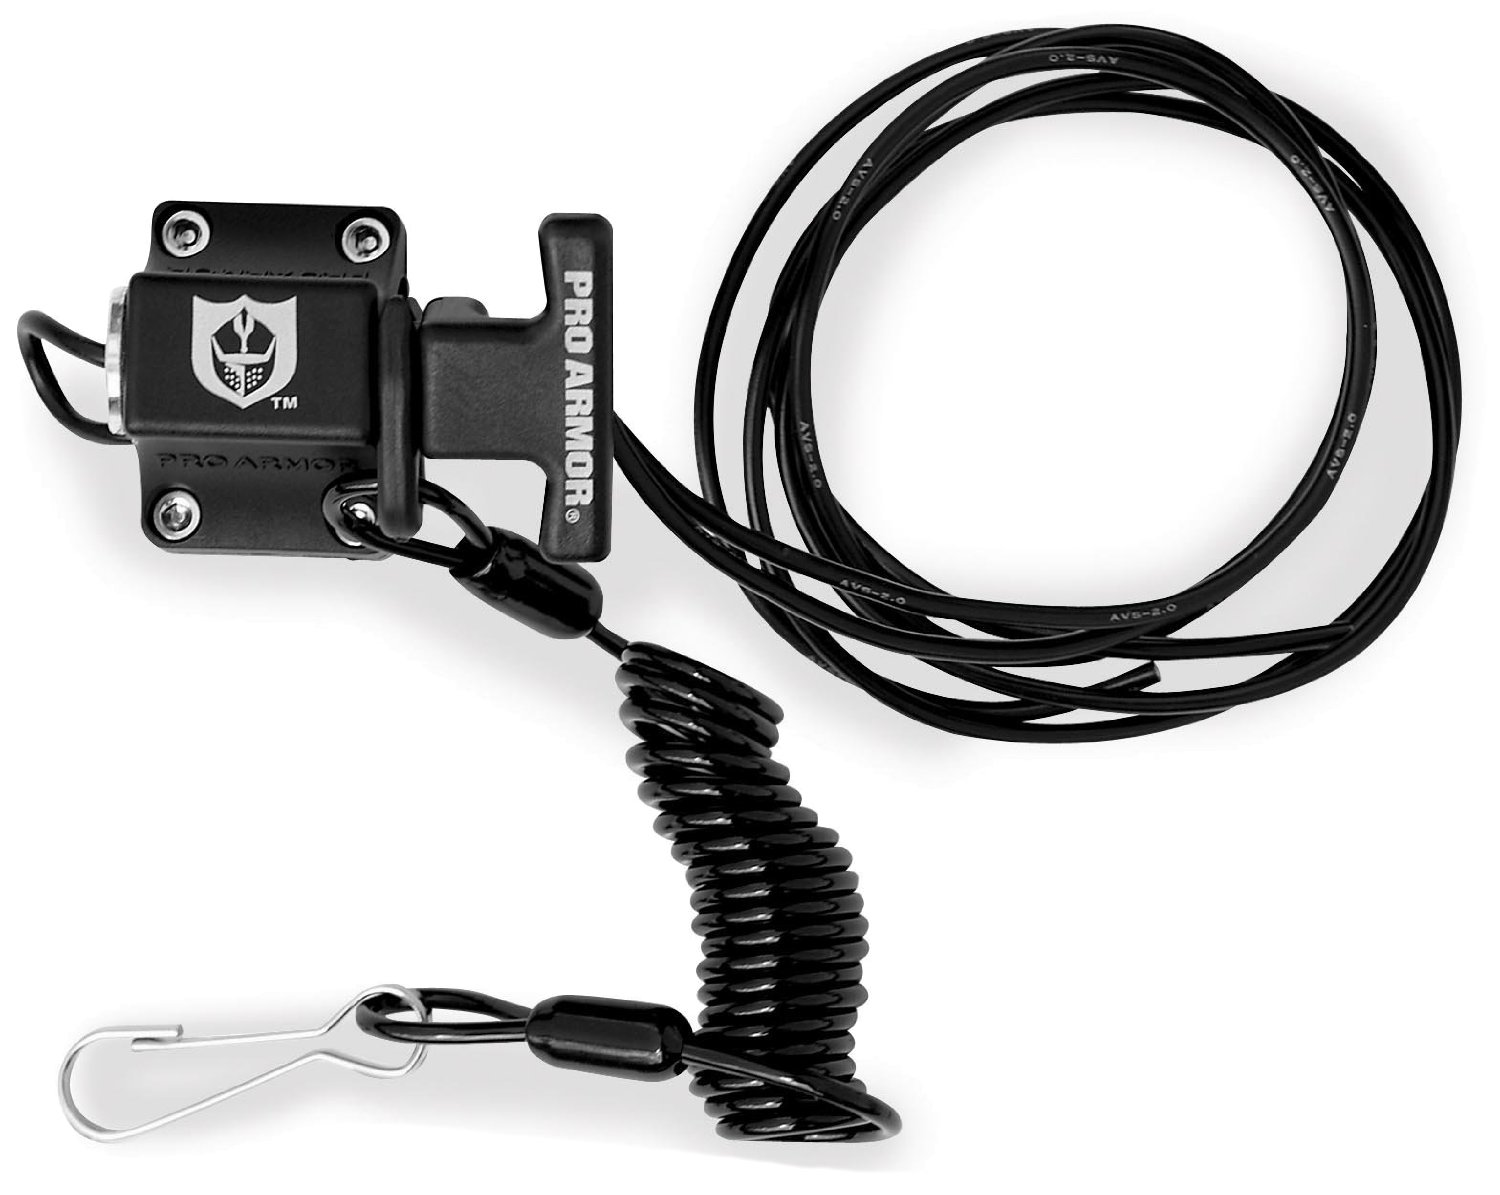 Pro Armor A040021 Black Universal Kill Switch by Pro Armor